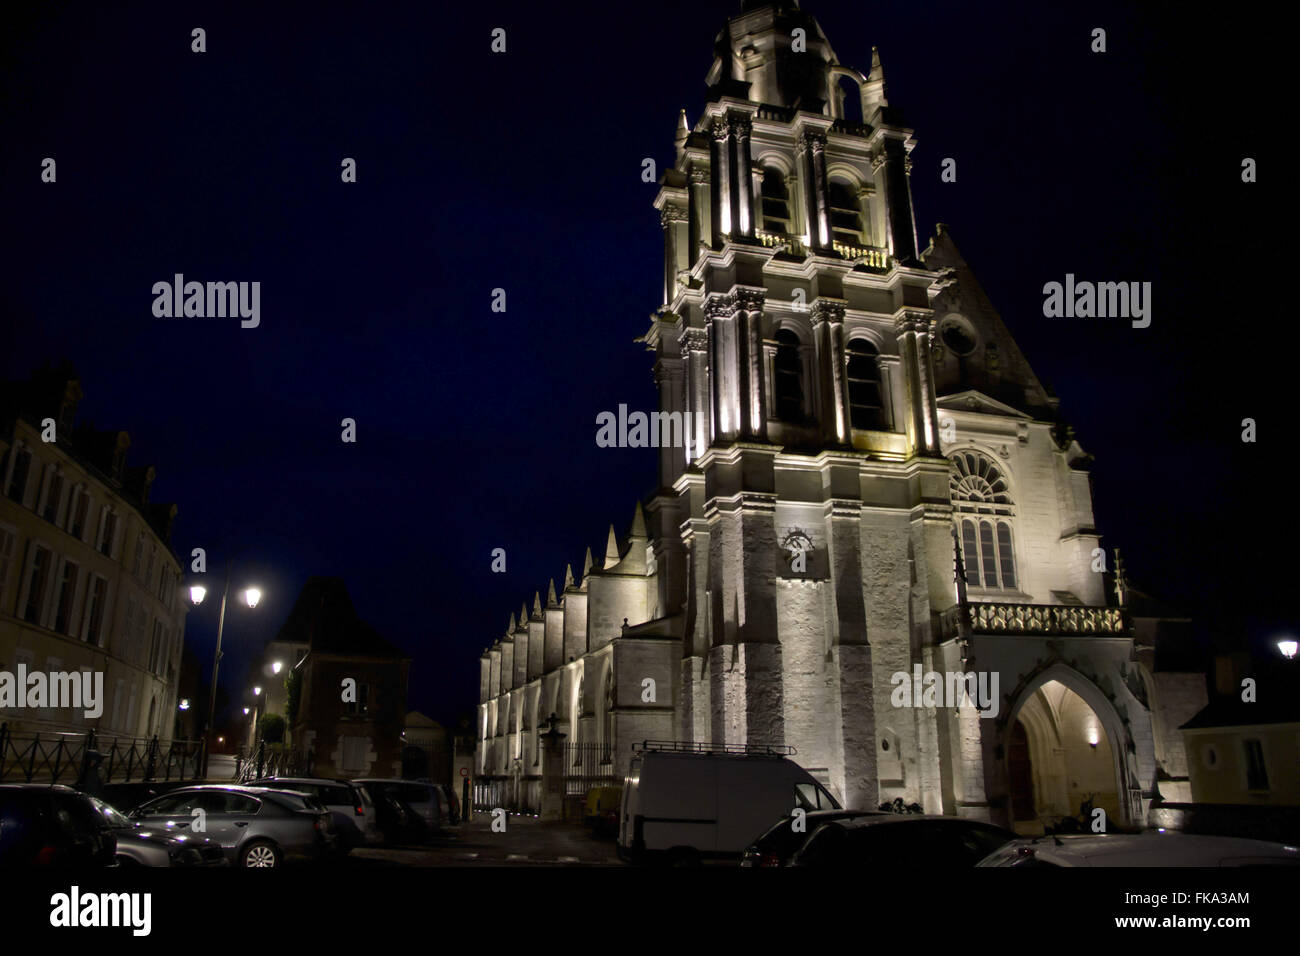 Cathedral Church of Saint Louis City of Blois - Loire Valley - Stock Image